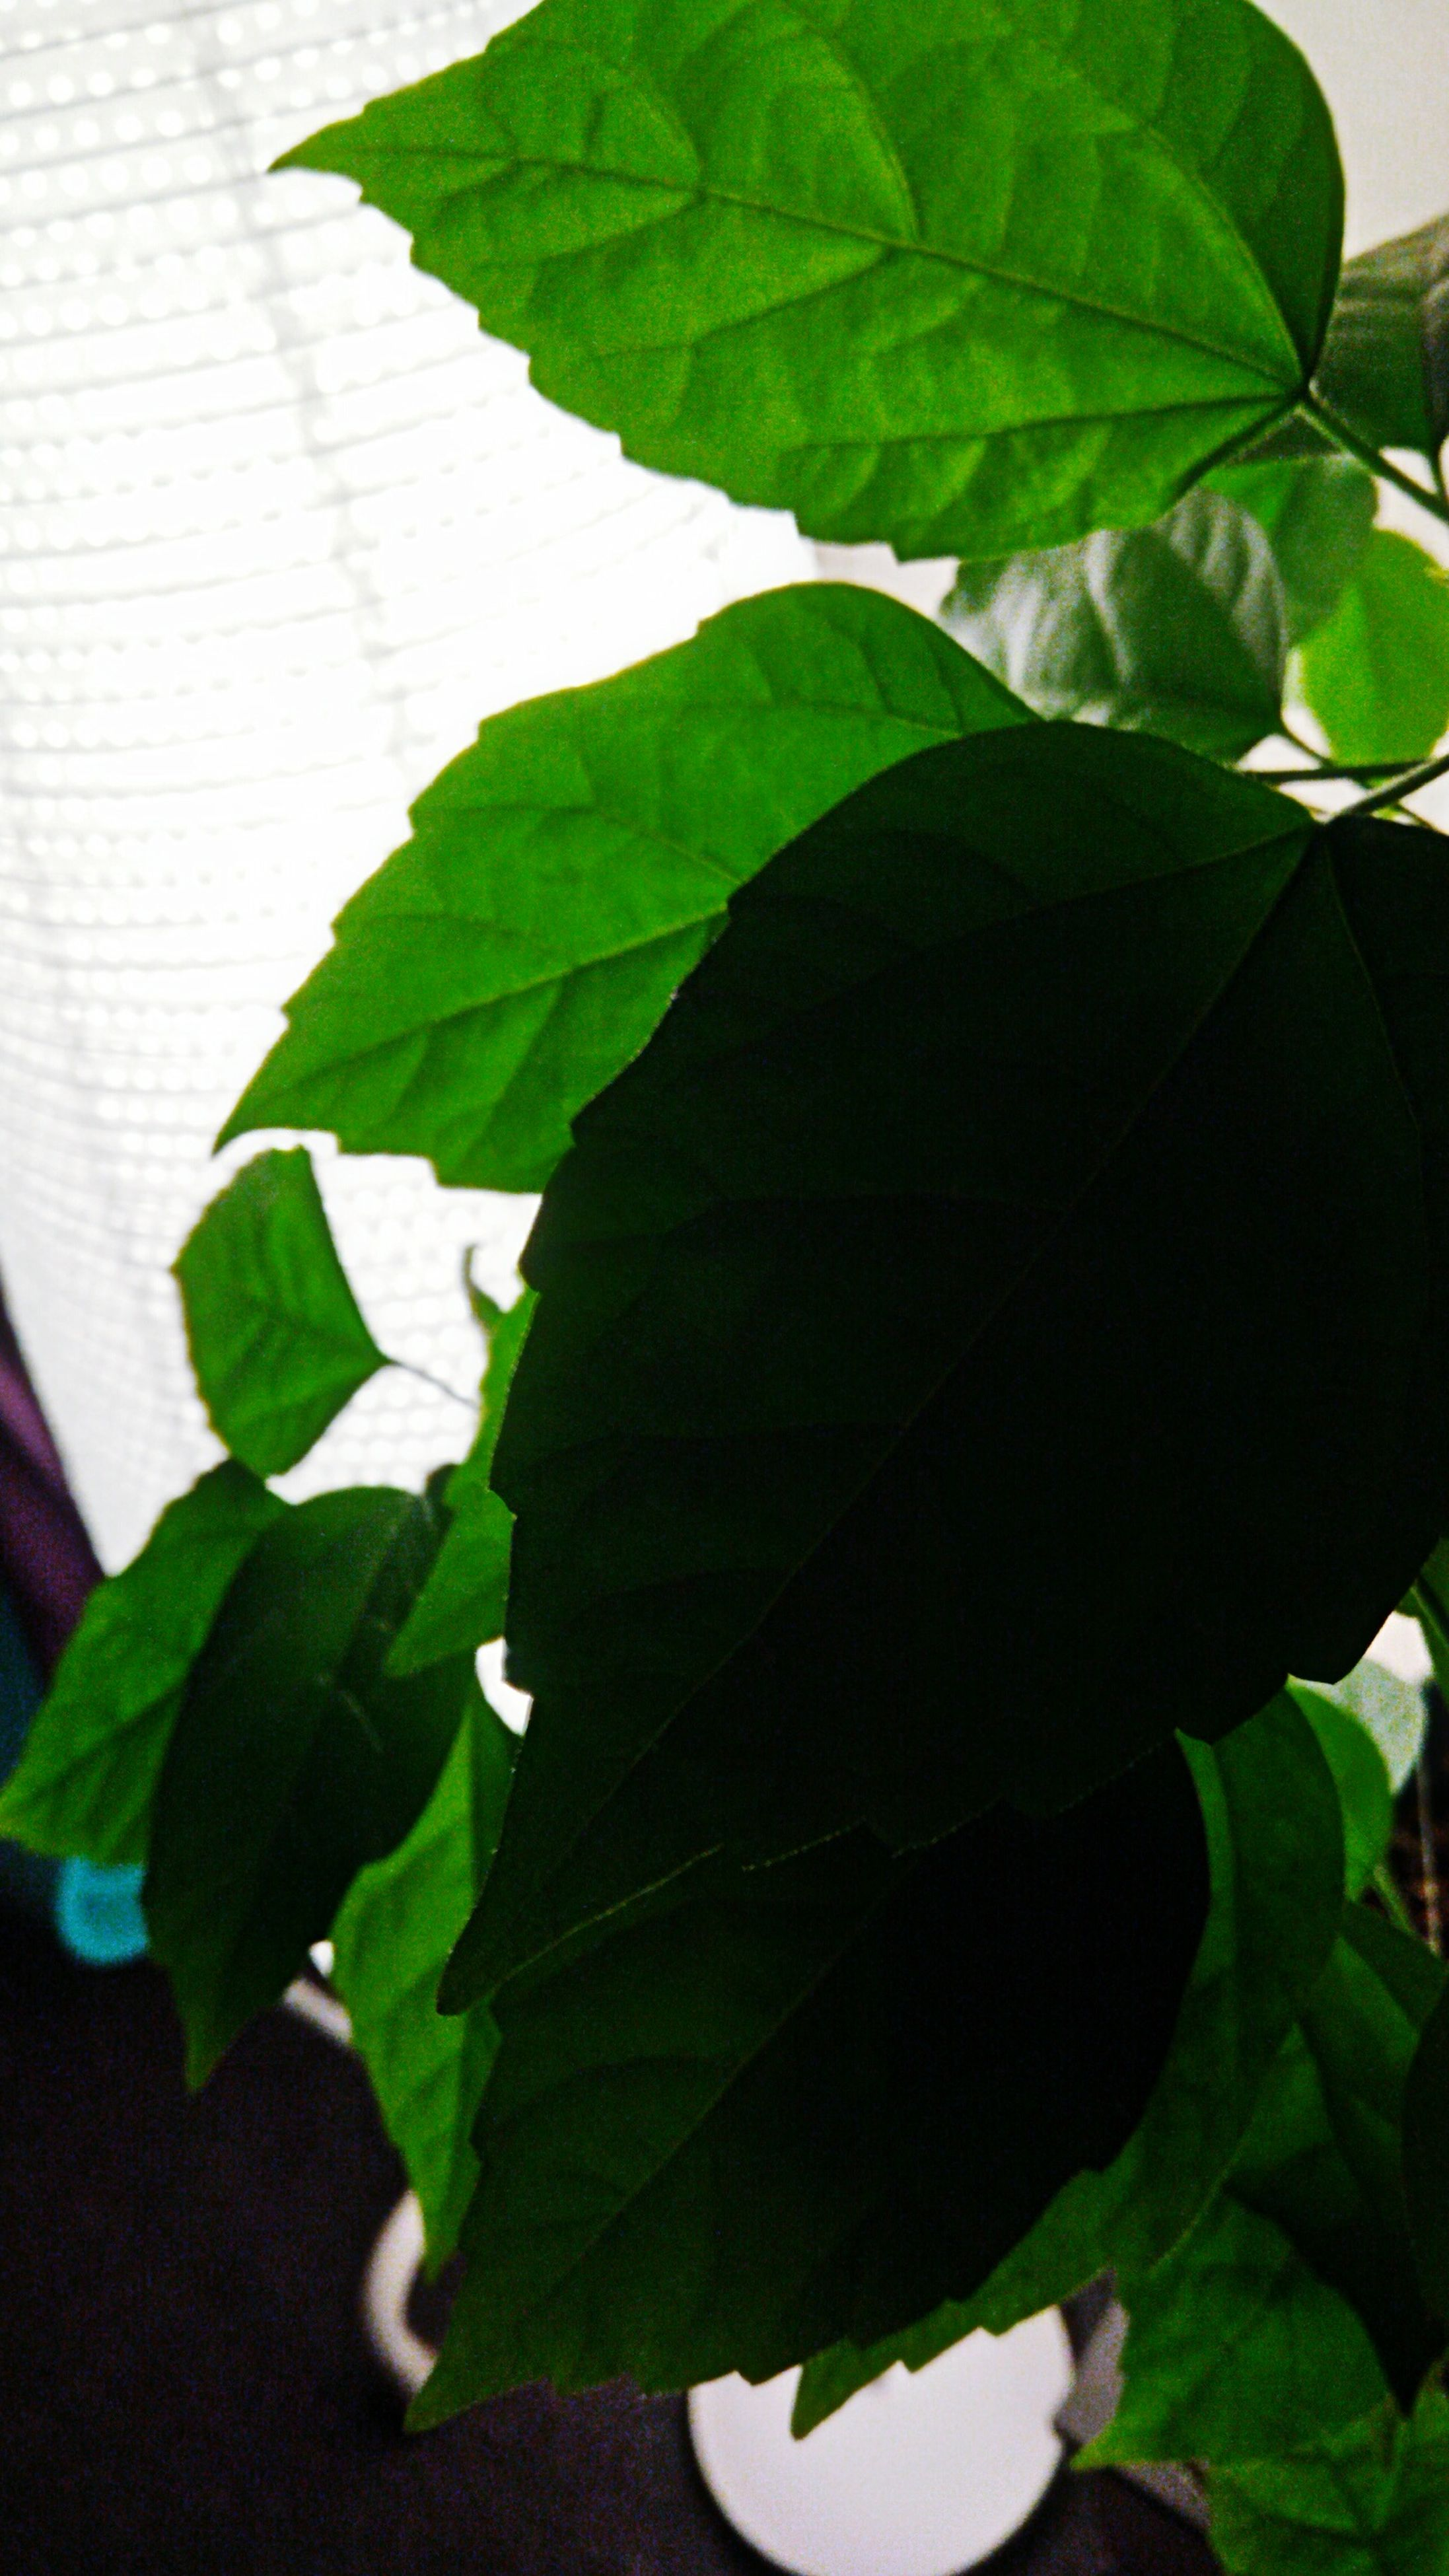 leaf, green color, growth, plant, nature, close-up, beauty in nature, no people, day, indoors, freshness, fragility